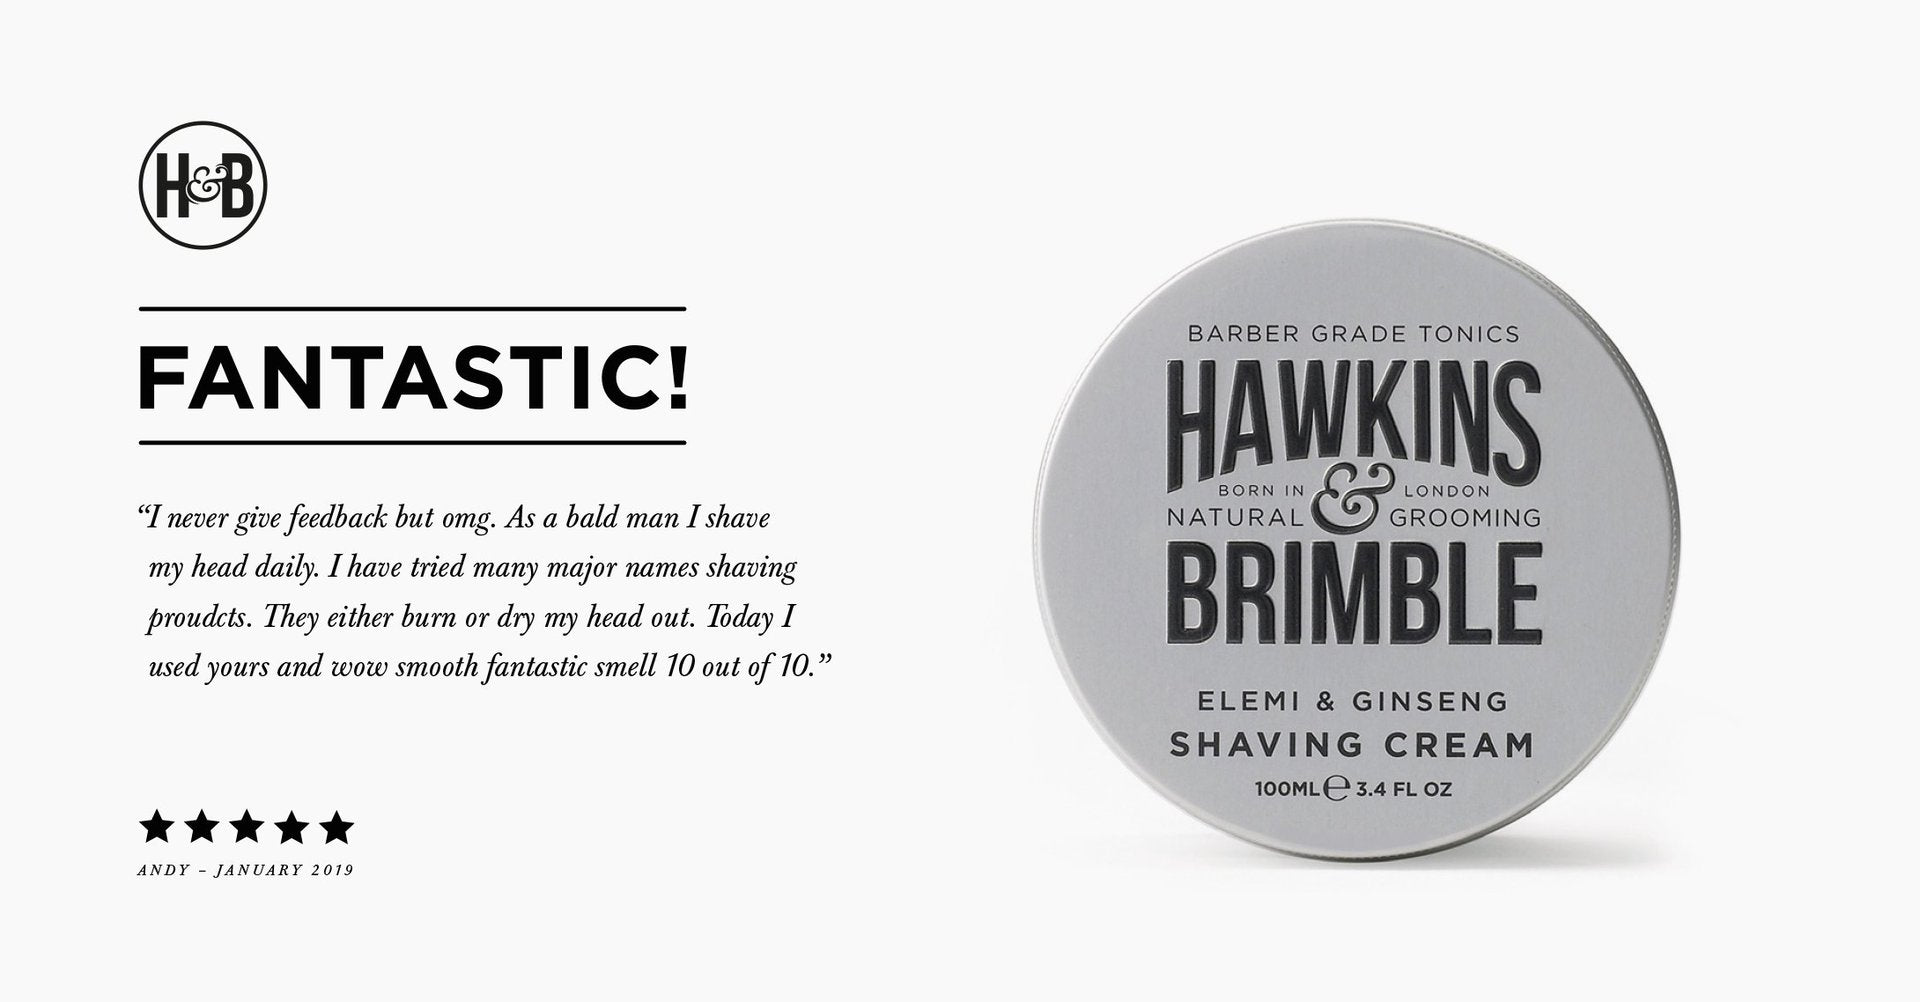 Hawkins and Brimble Mens Grooming Products London